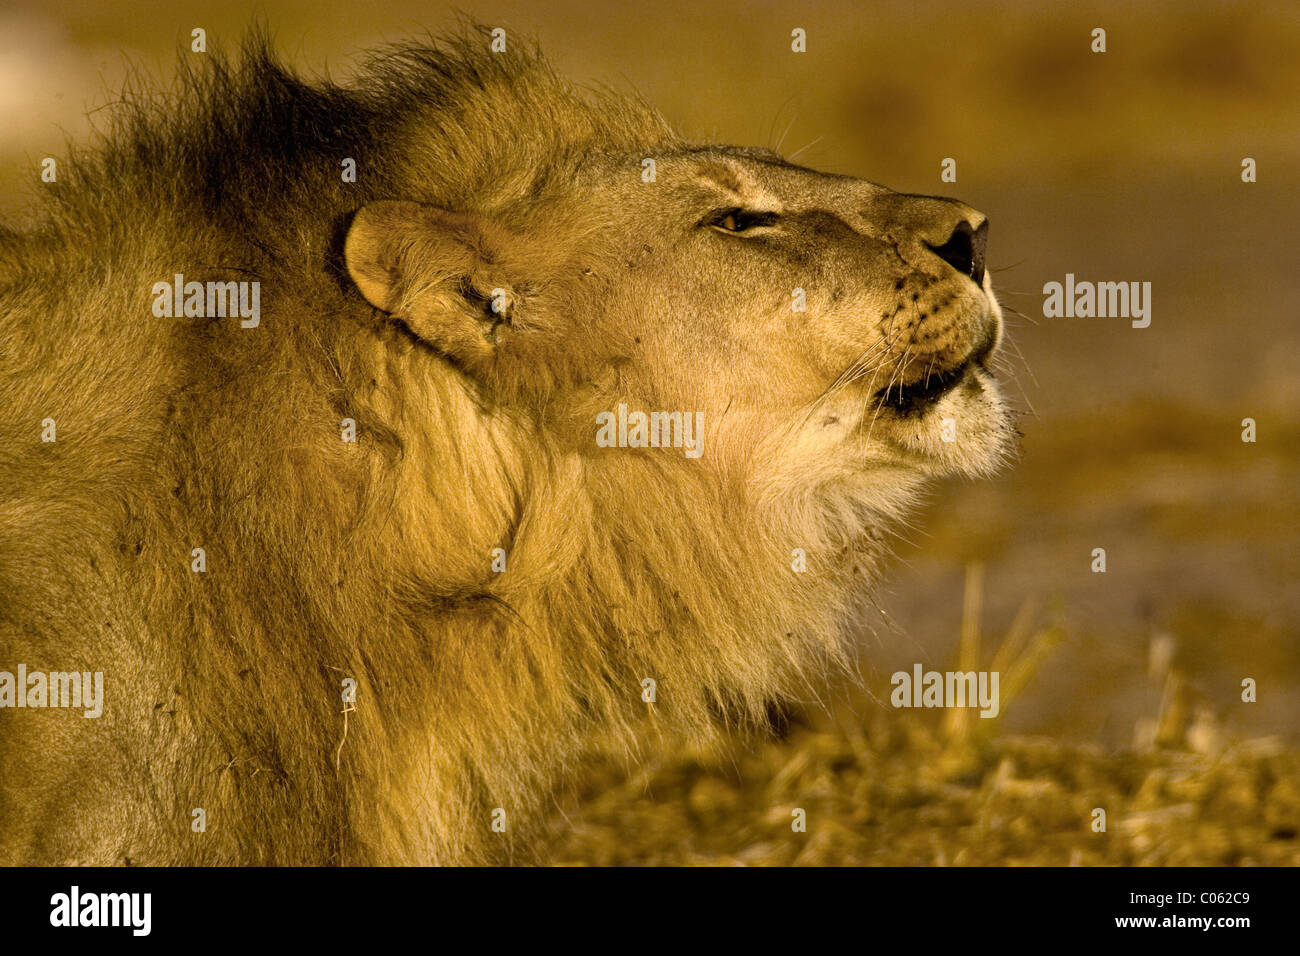 Roaring Lion portrait, Etosha National Park, Namibia Stock Photo